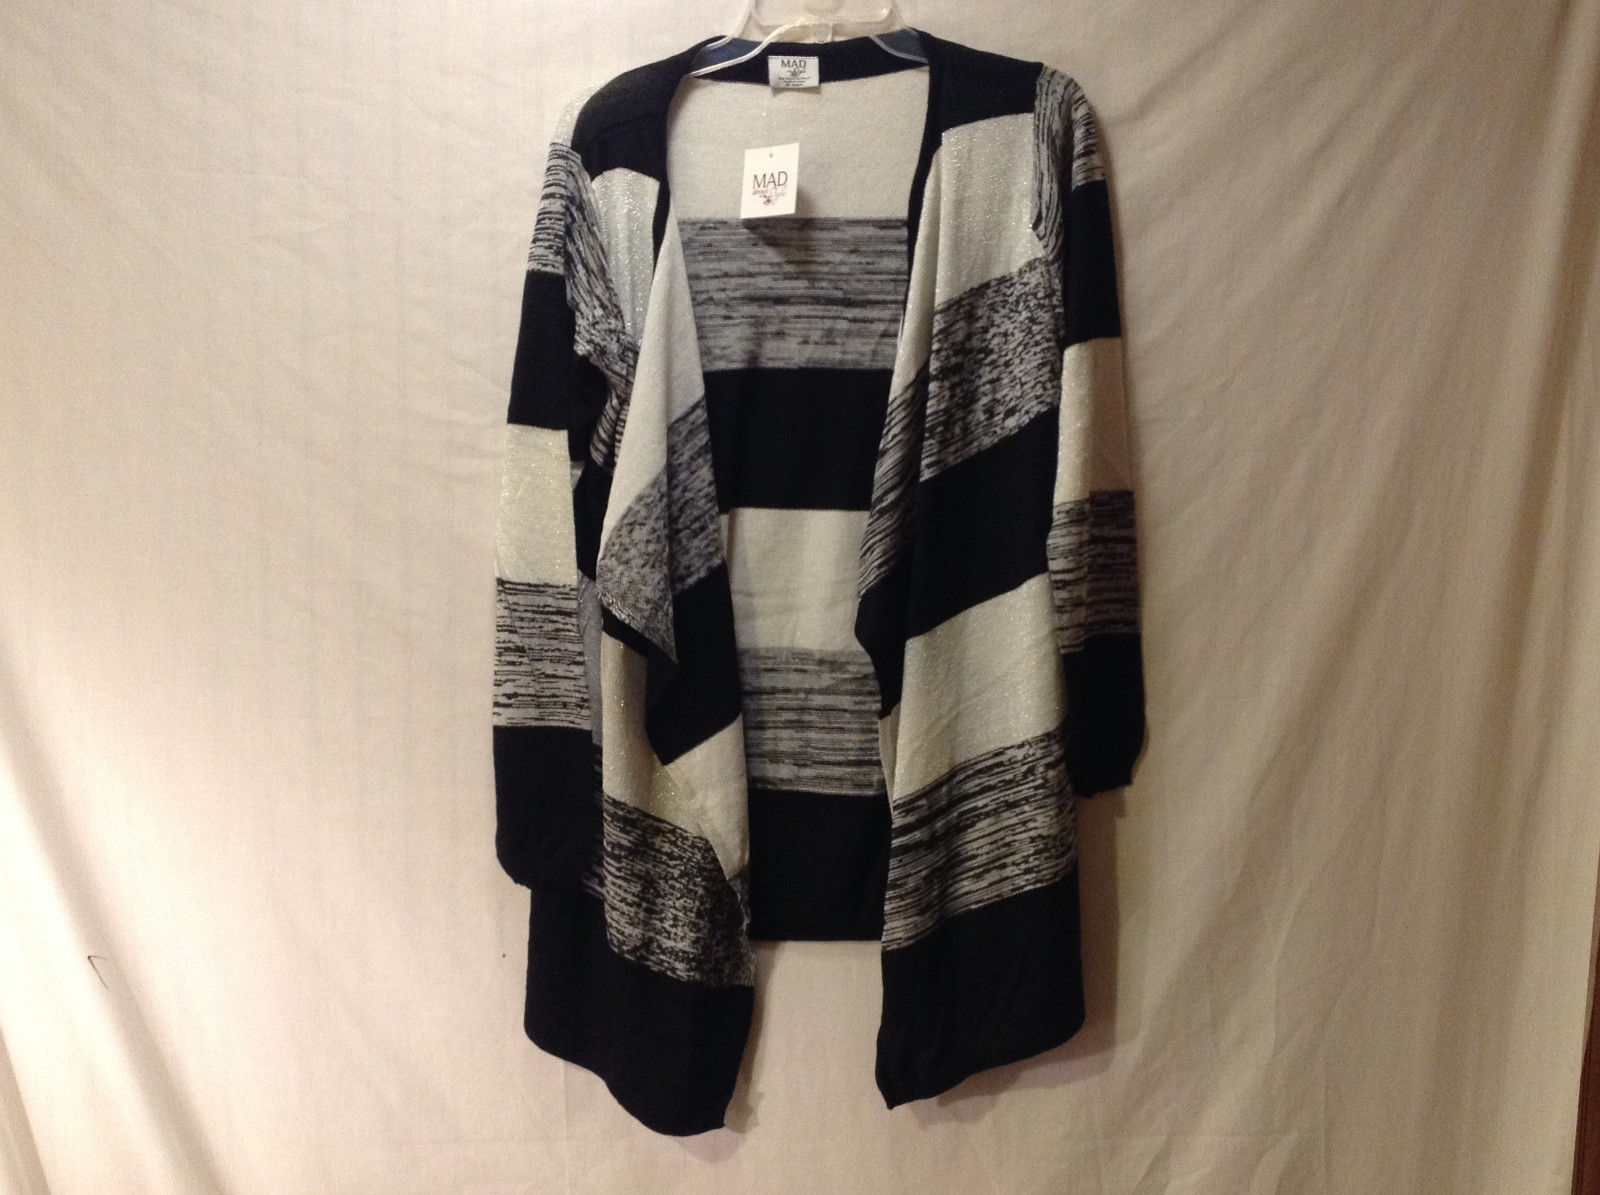 Mad Style Women's One Size Cardigan Black & White Striped w/ Metallic Threads